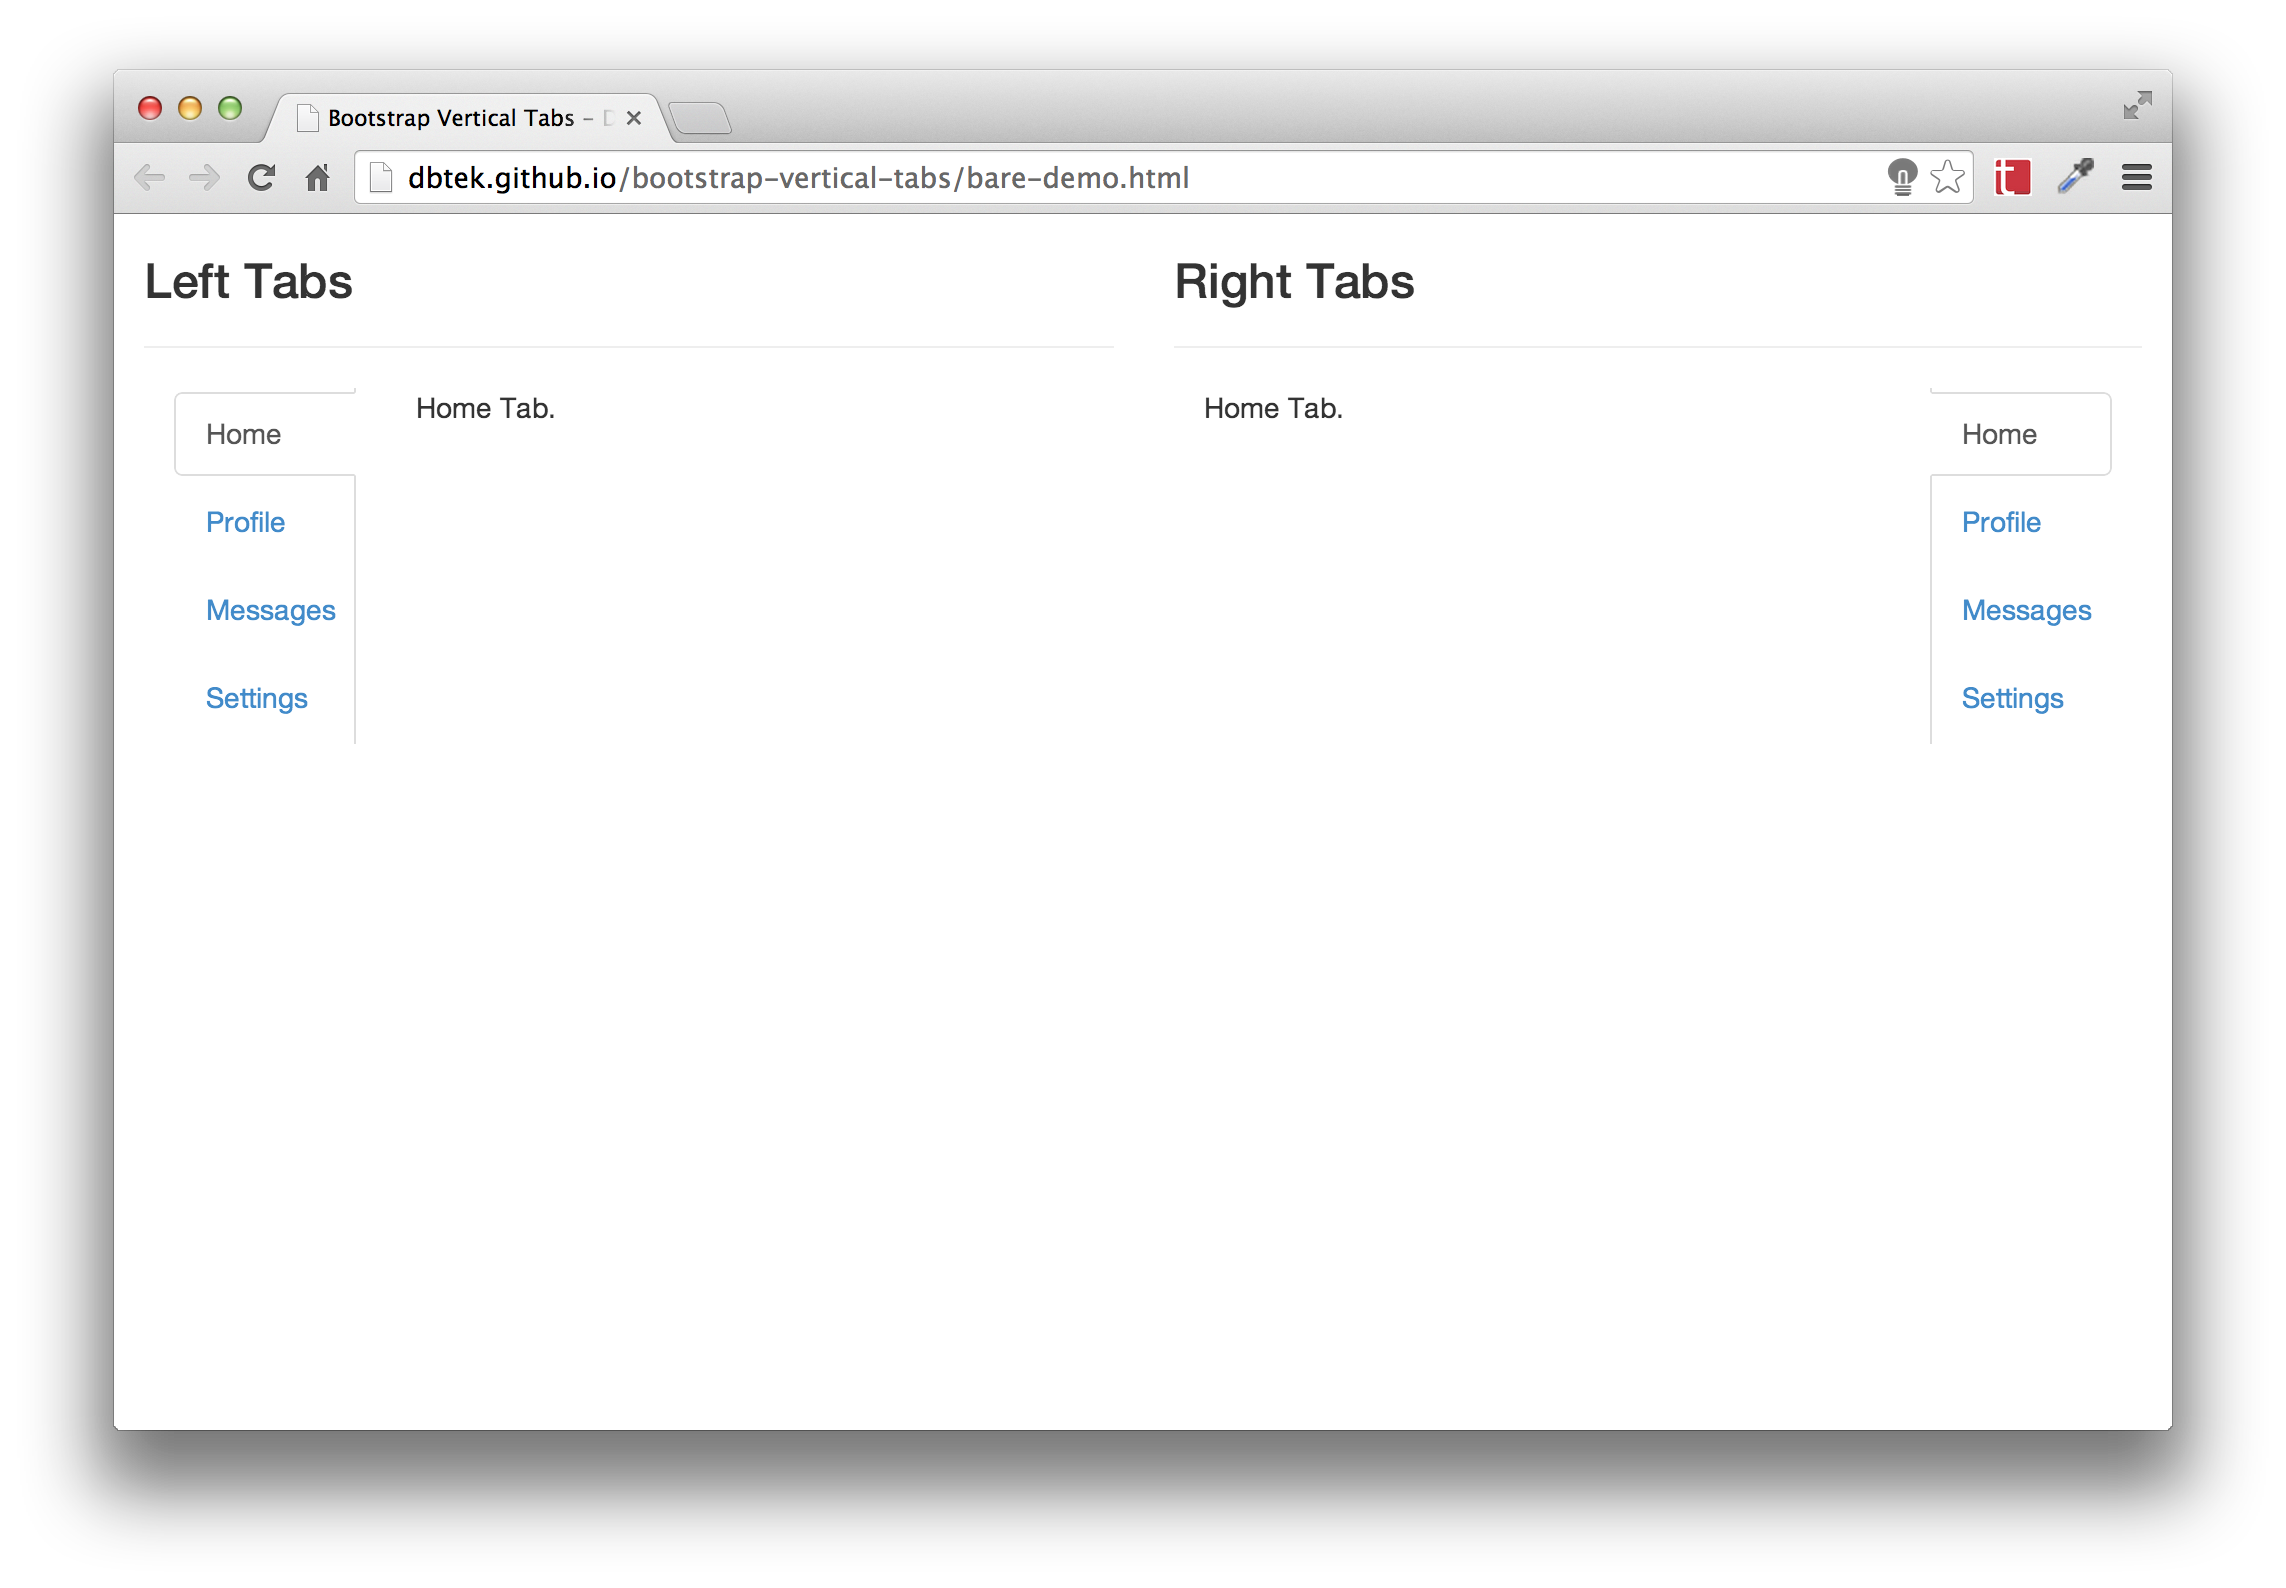 bootstrap-vertical-tabs - npm